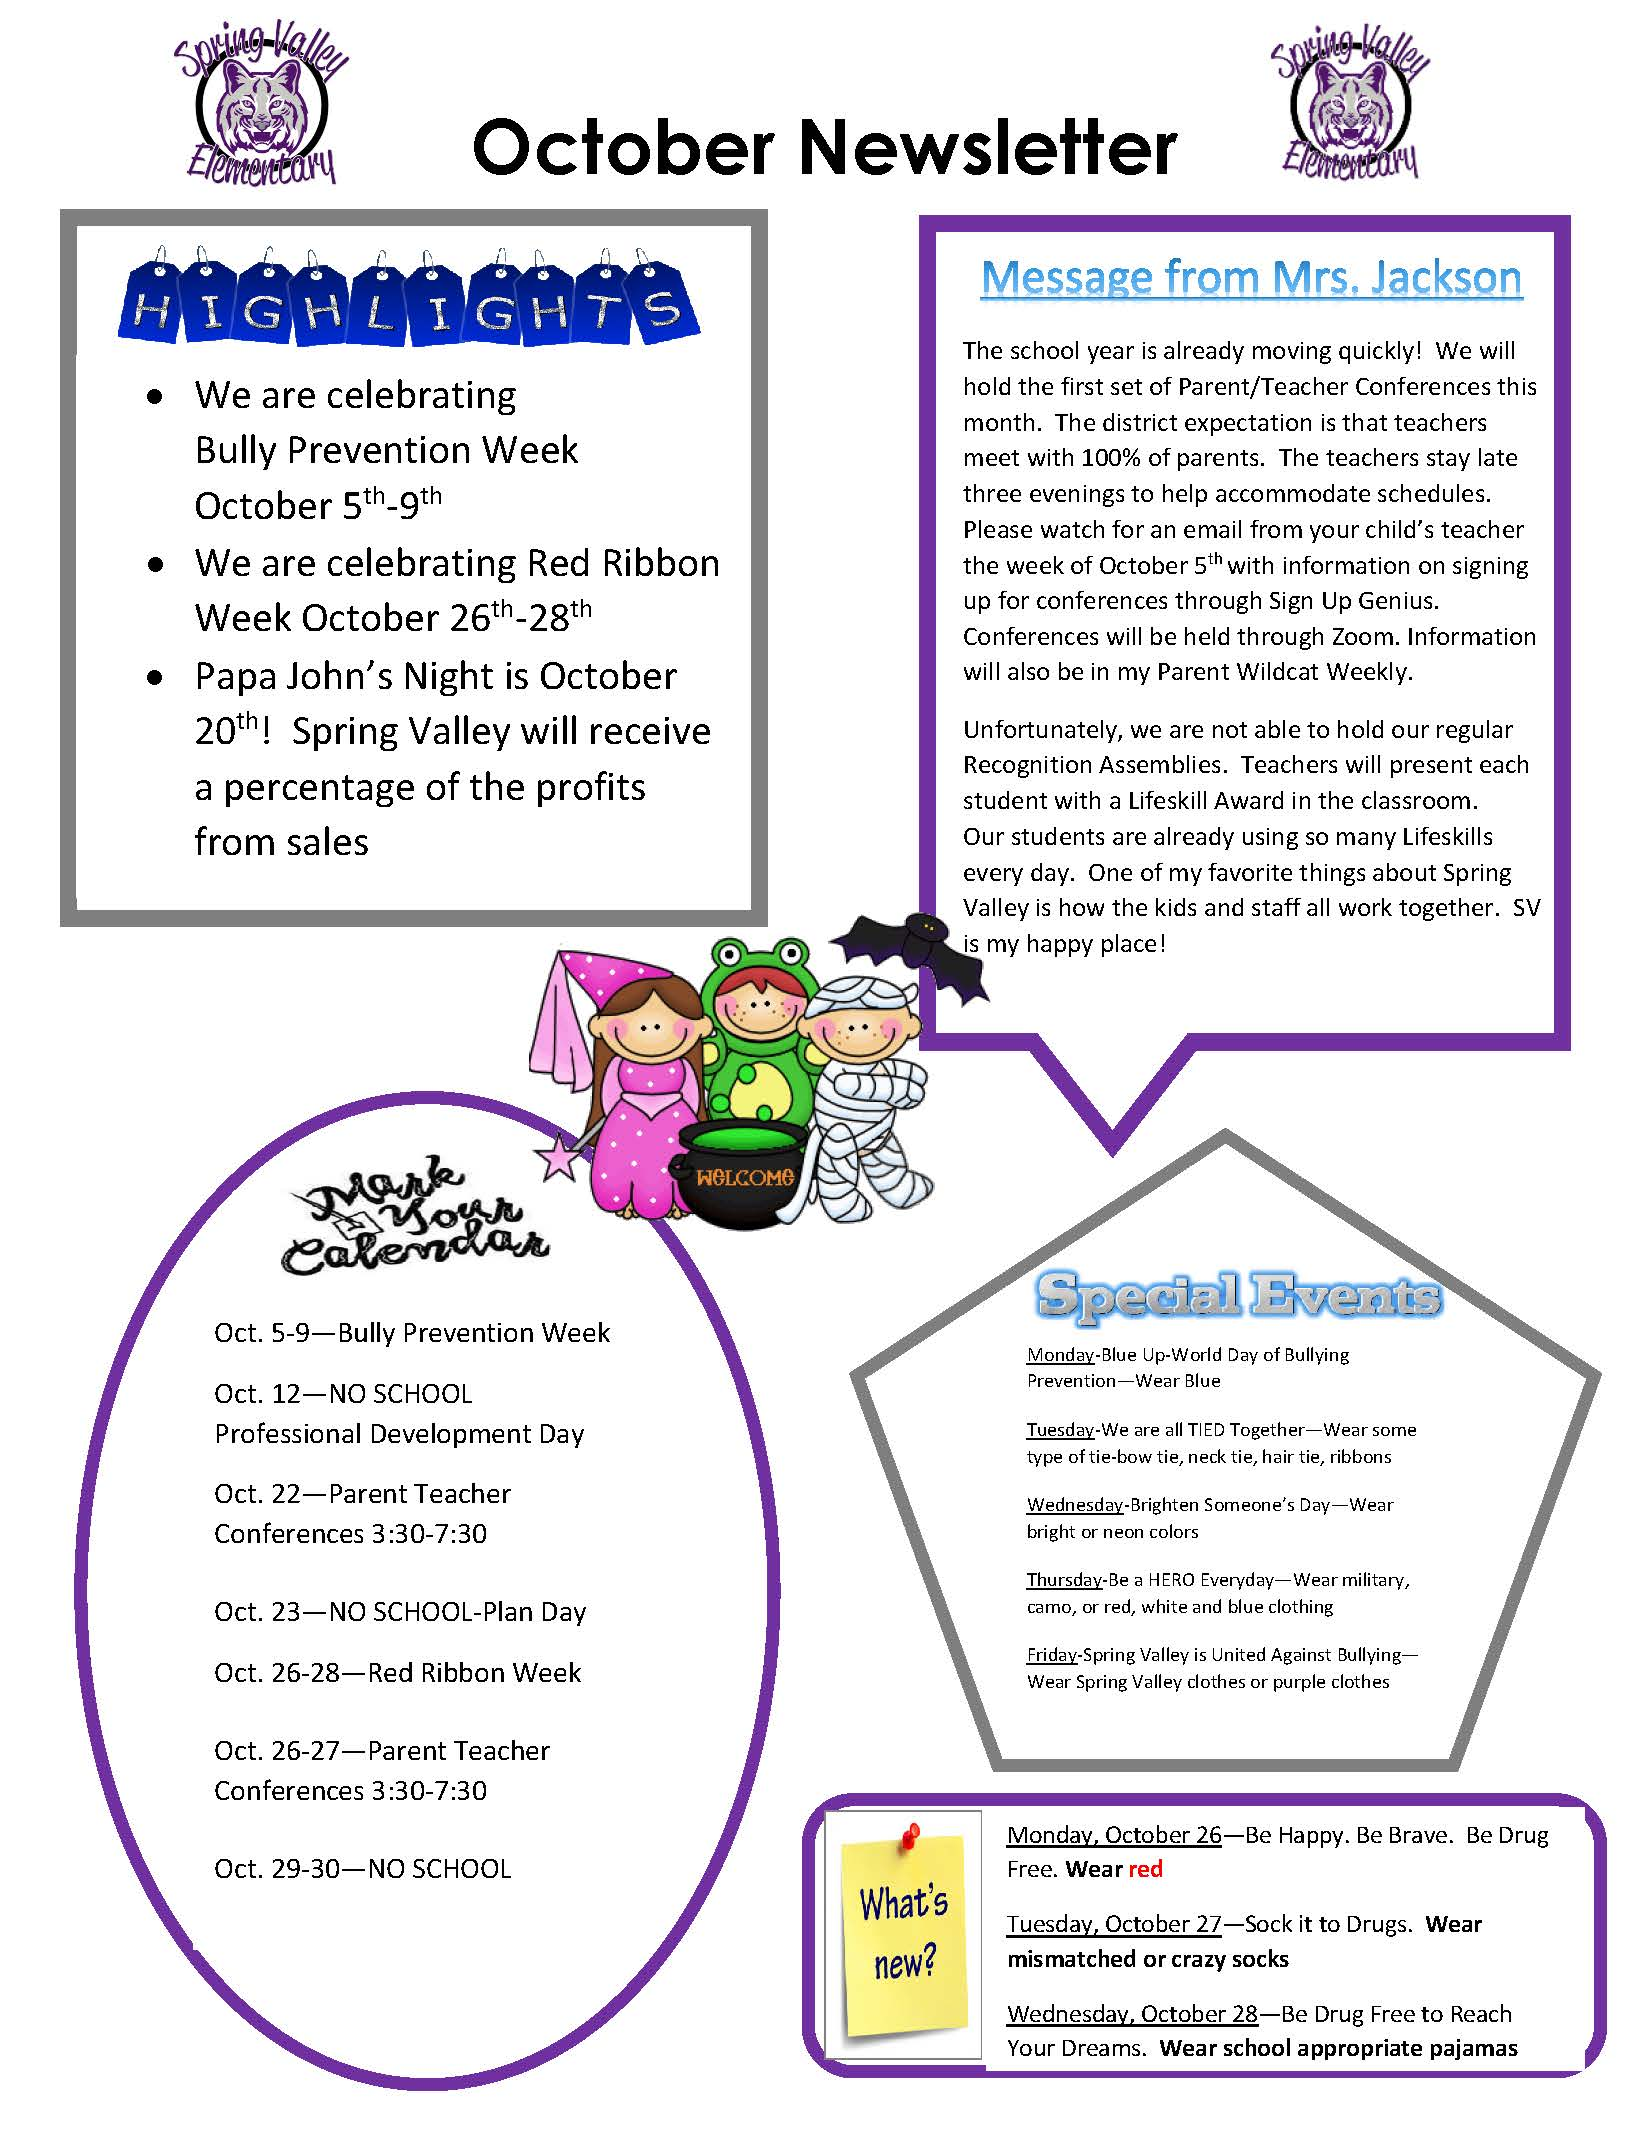 Photograph of October Newsletter